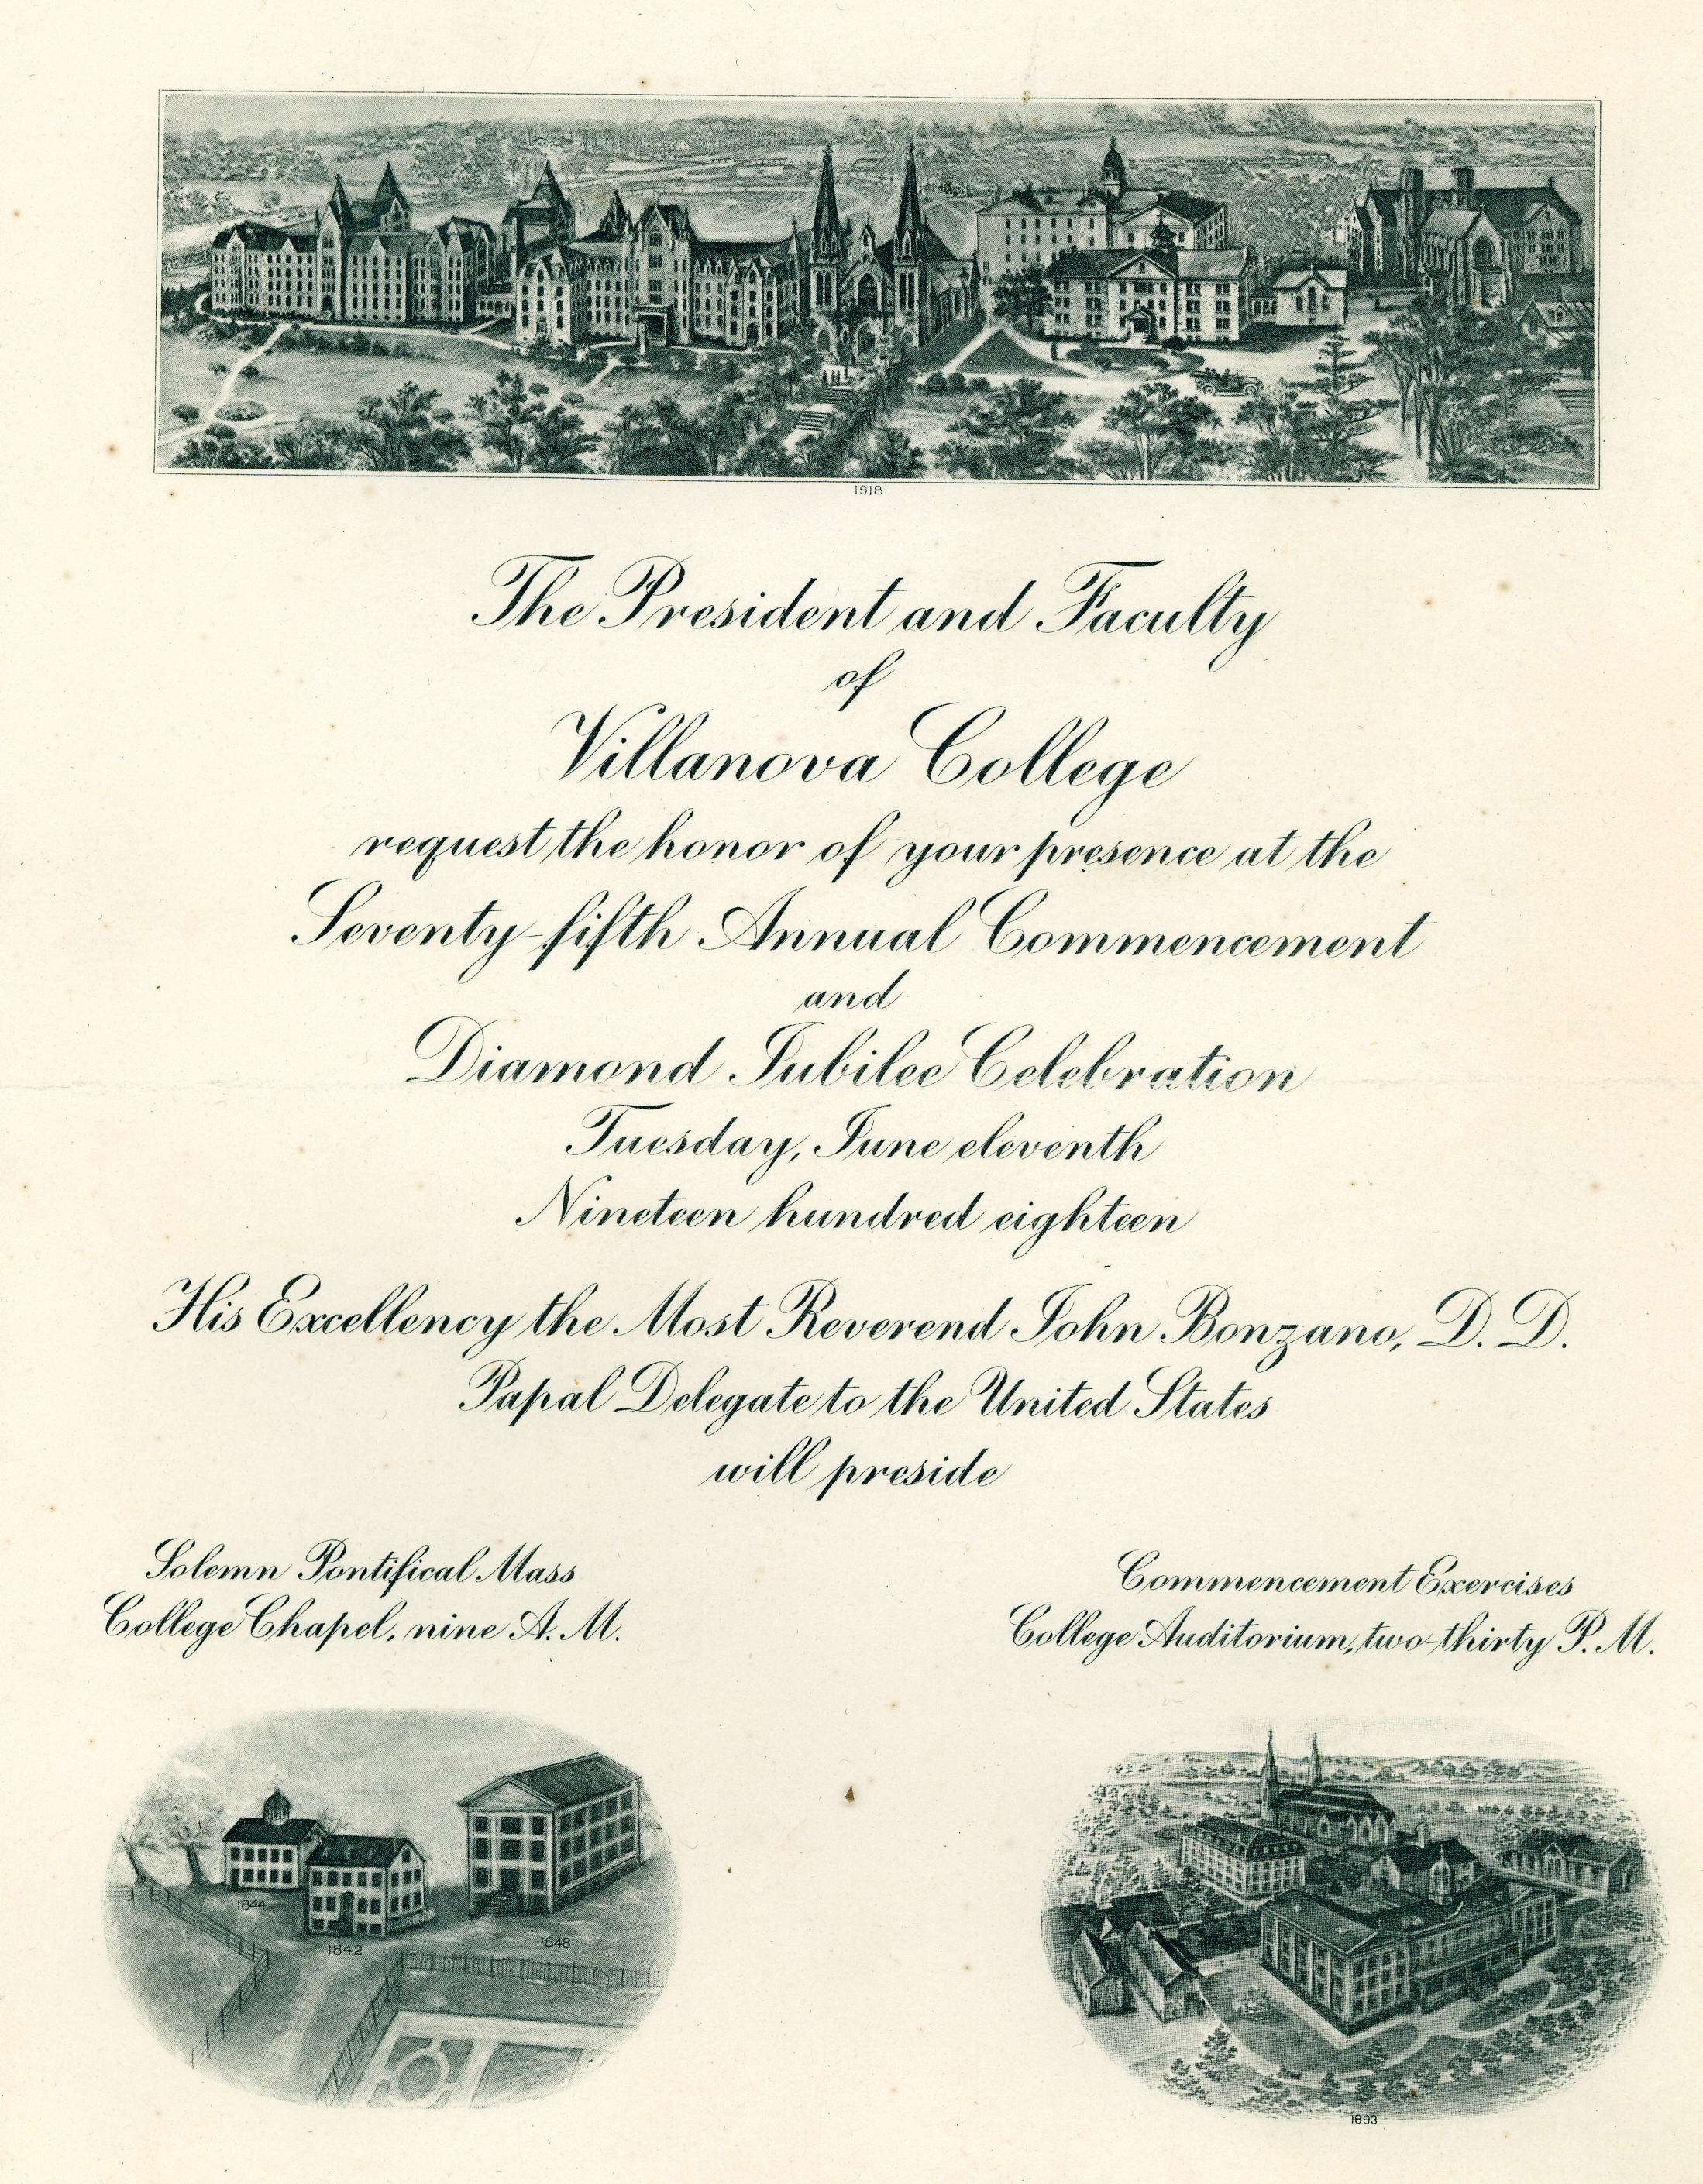 Invitation, Diamond Jubilee Commencement, 11 June 1918